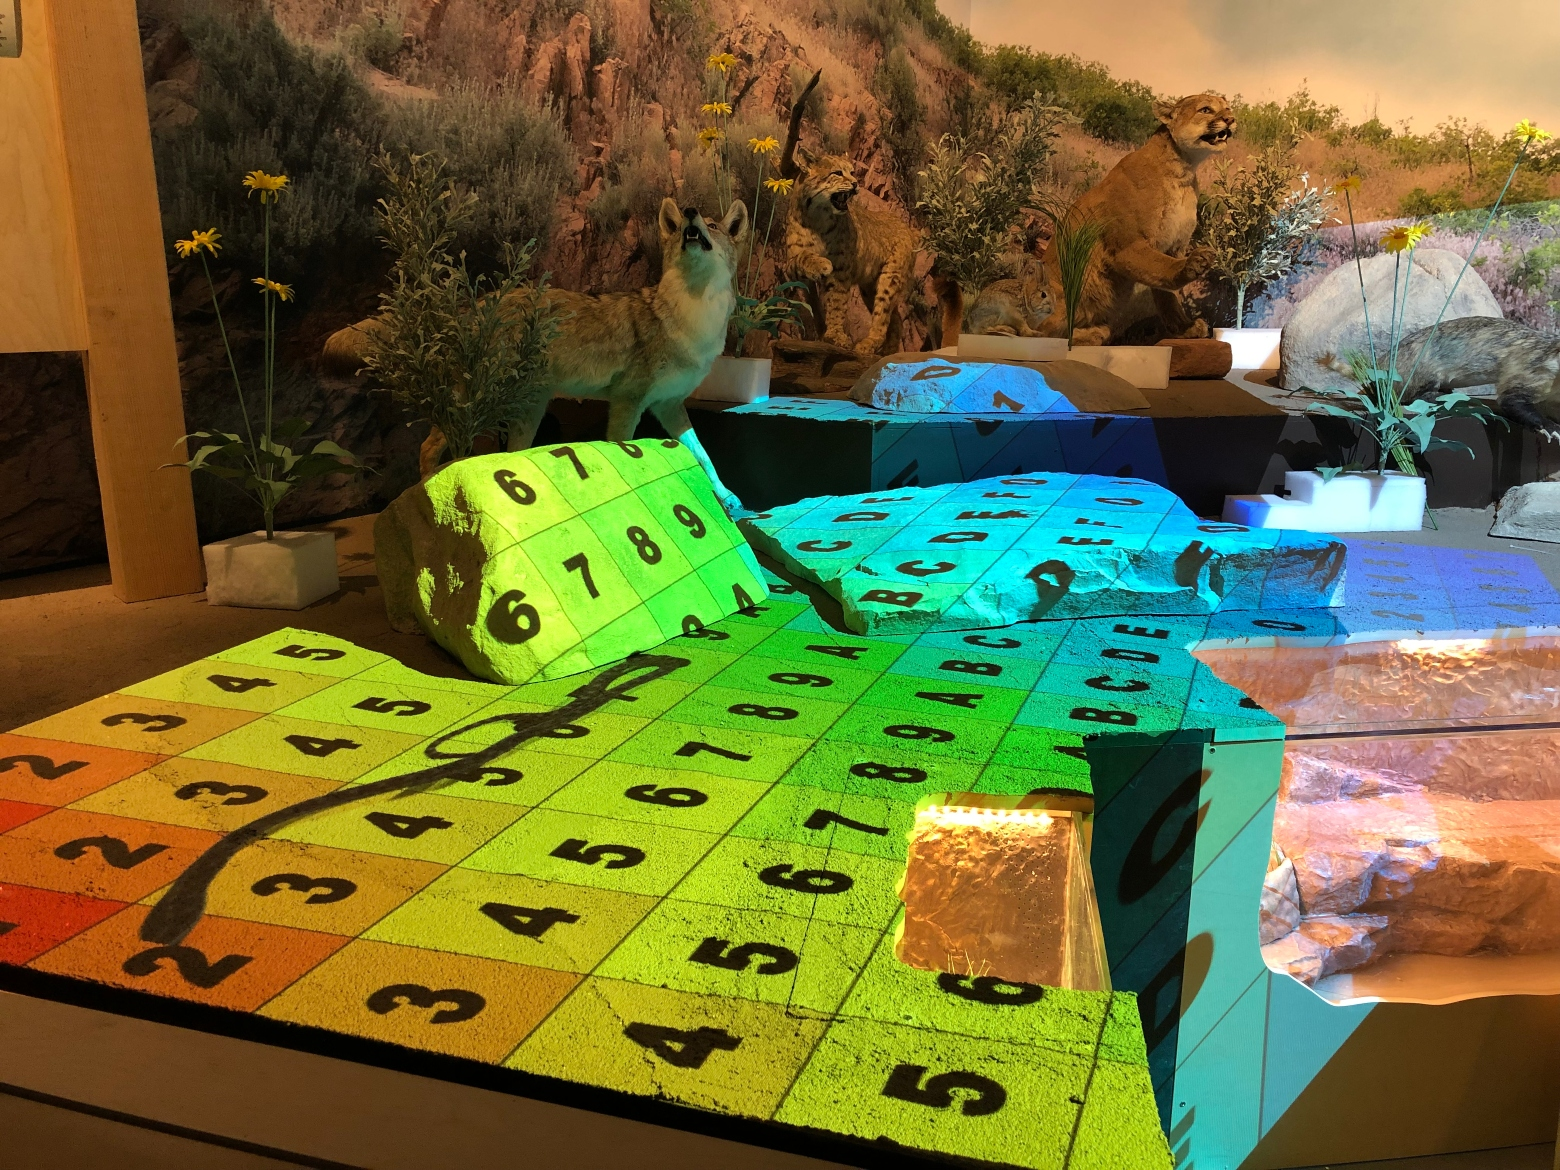 An image of a Salt Lake City foothill diorama, showing numbered squares used to plan a projection map.